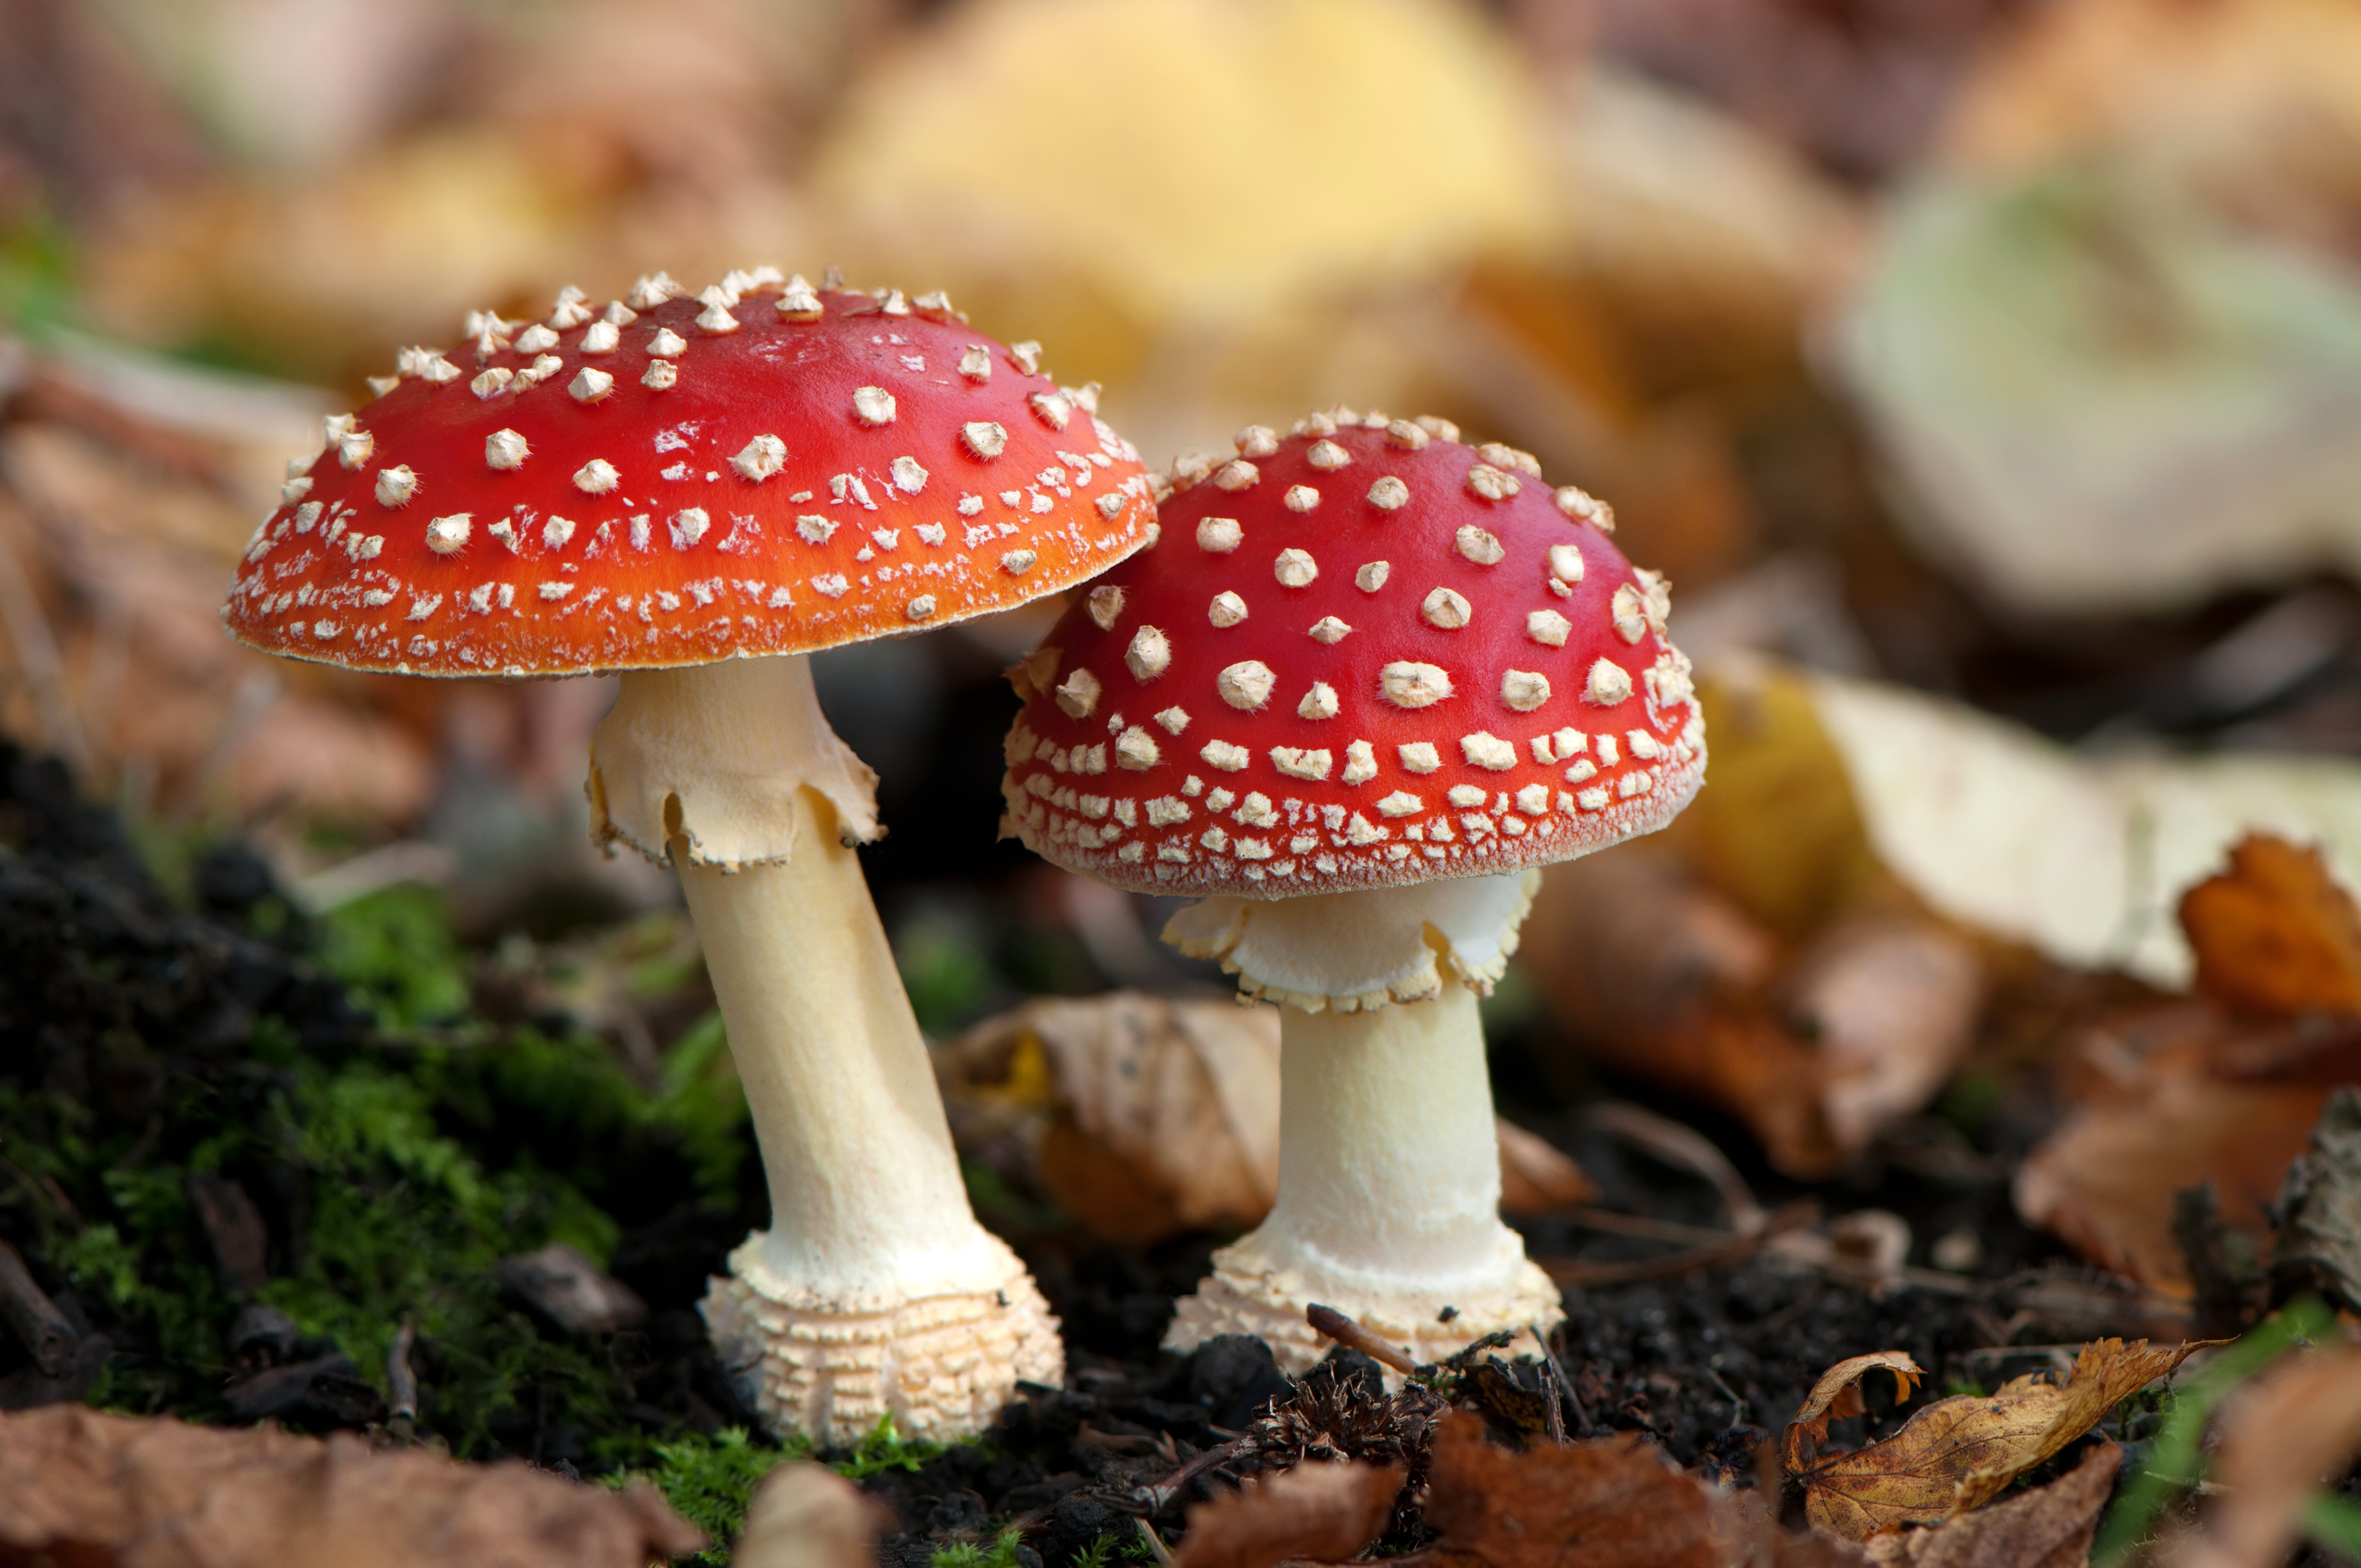 Mycology: The Study Of Fungi - warts.org